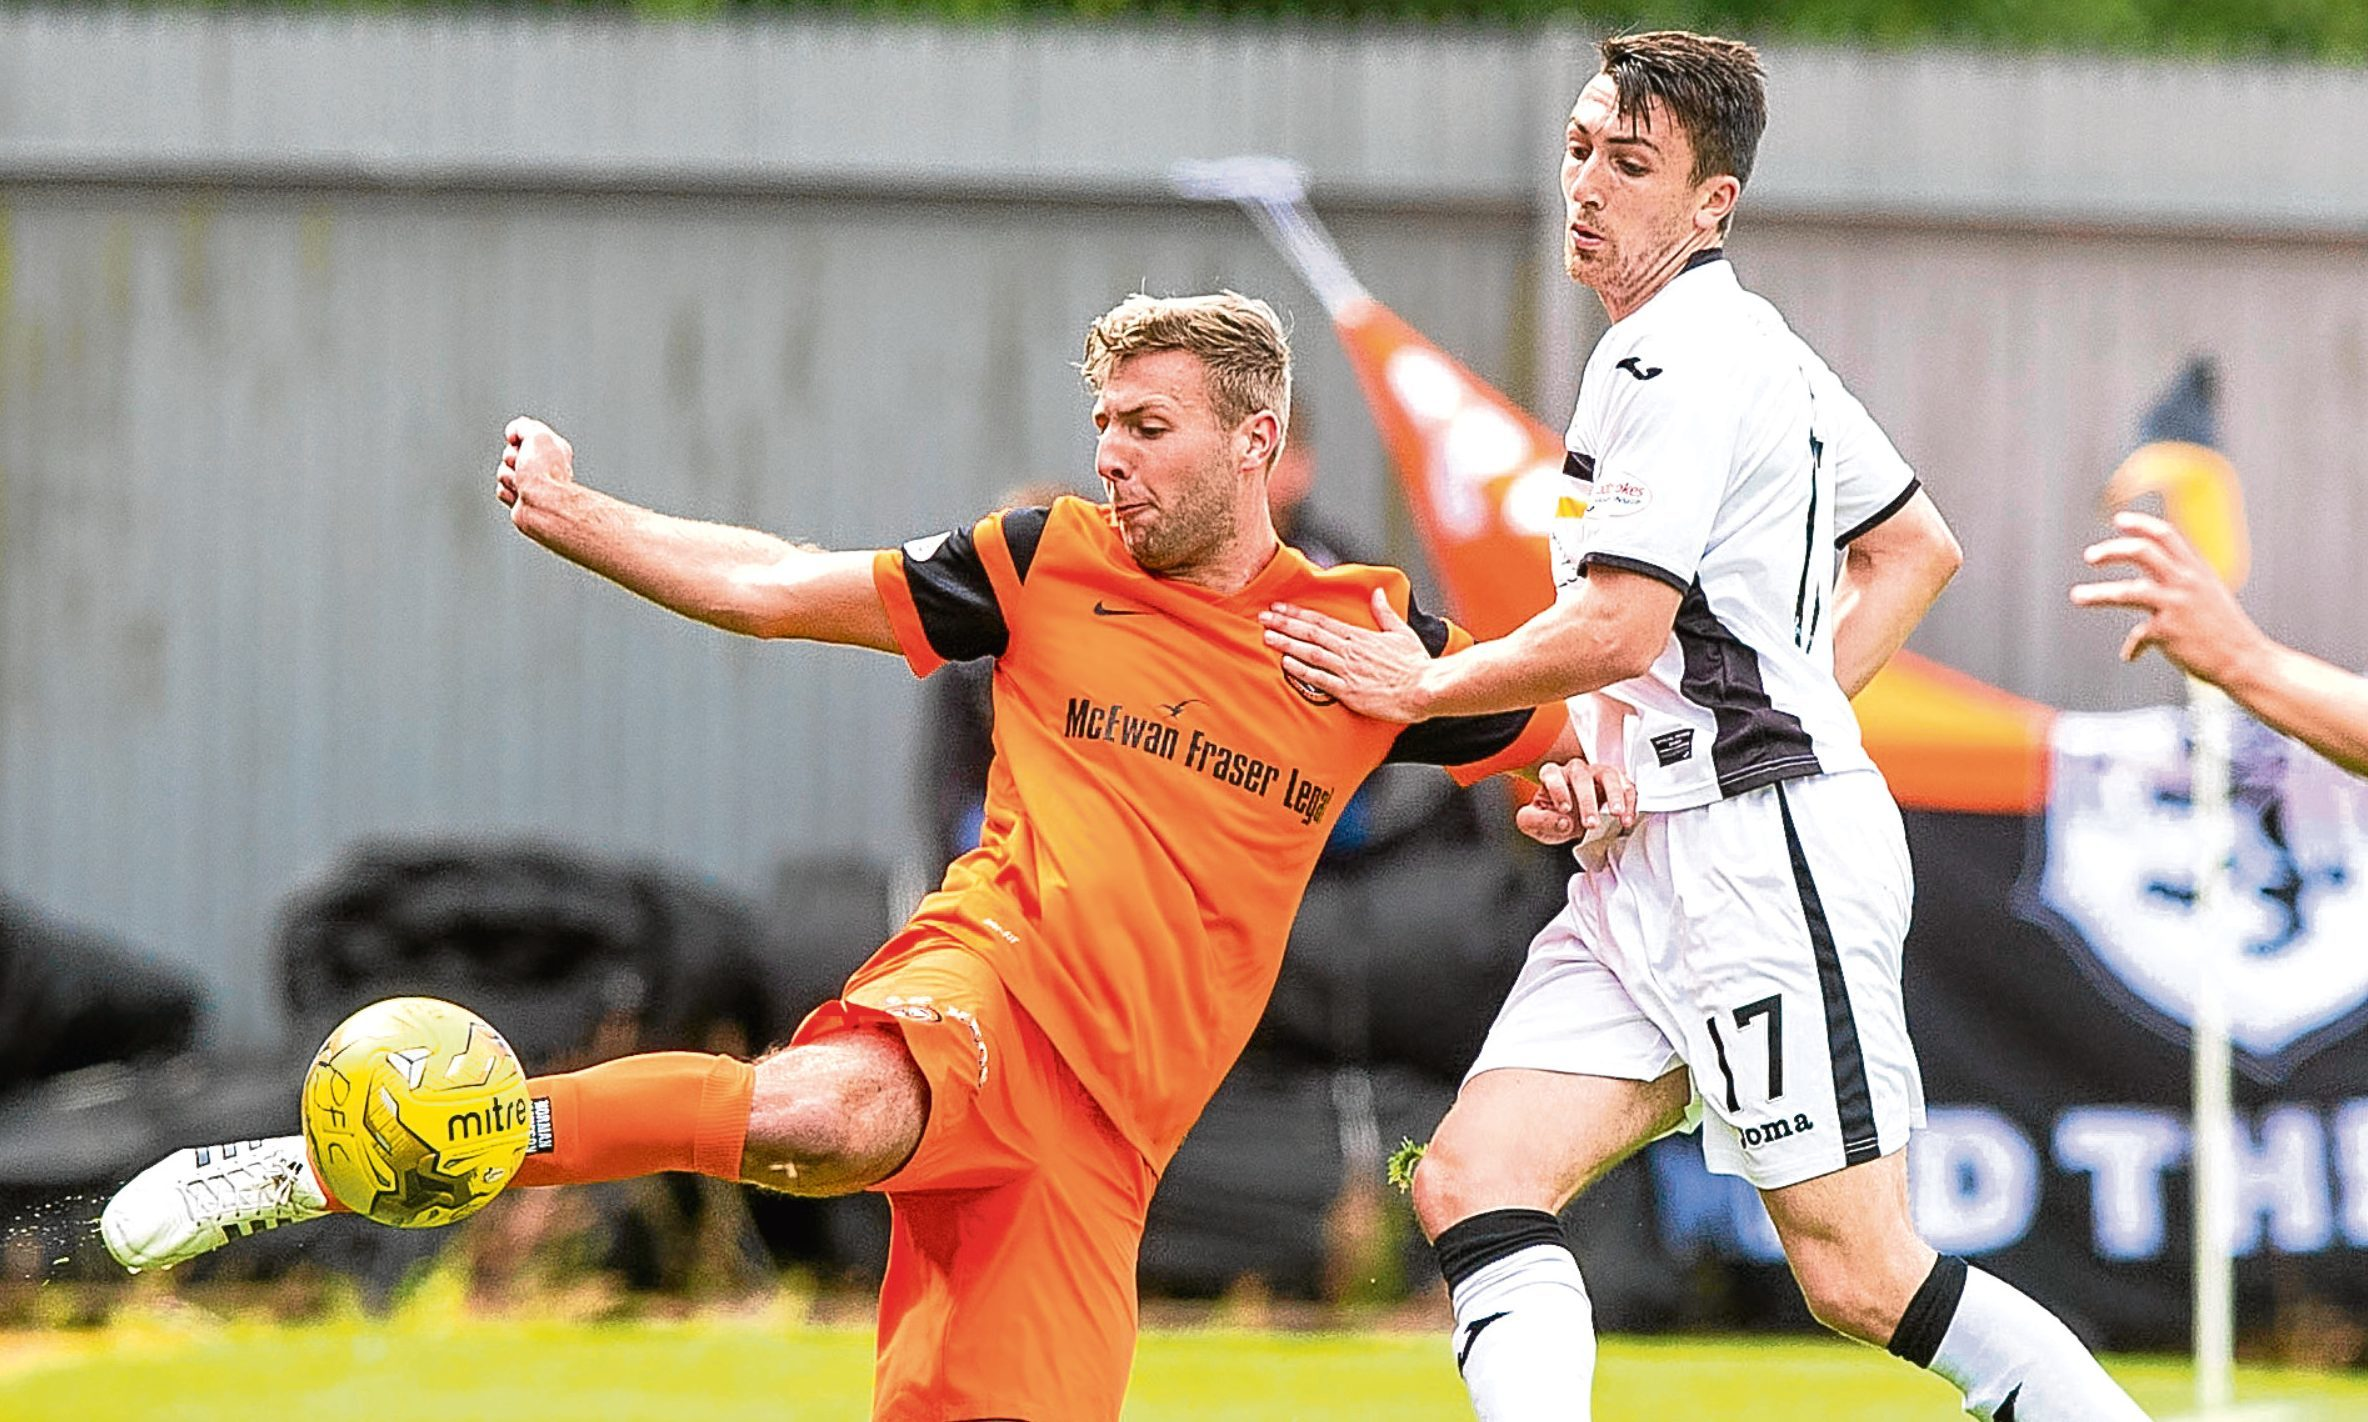 Dundee United defender Lewis Toshney (pictured in action against Dumbarton) knows a visit to Easter Road will be no easy task, with Hibs desperate to get back to top-flight football next season.